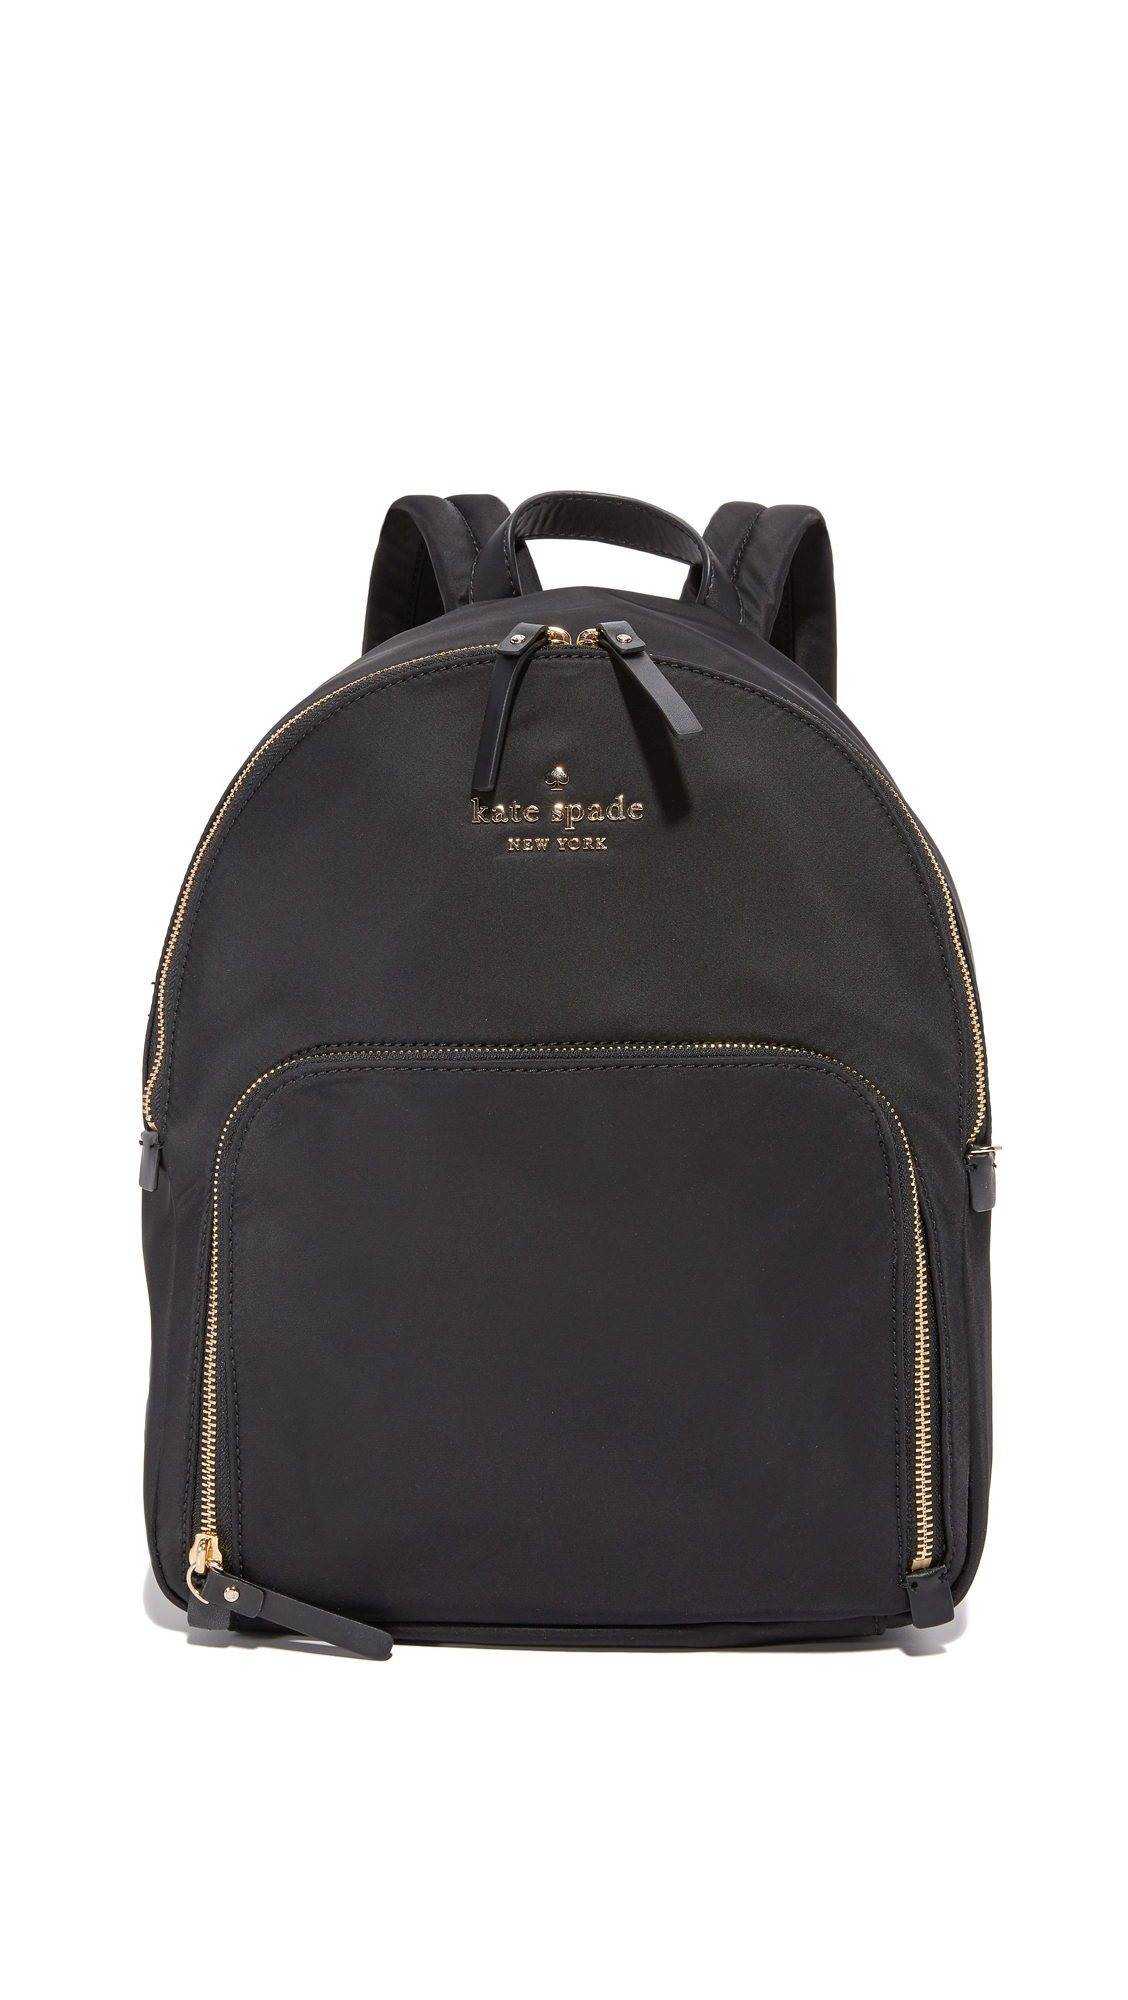 A compact Kate Spade New York backpack rendered in smooth nylon weave. Logo letters and a zip pouch pocket detail the front. Lined, single pocket interior. Padded, adjustable shoulder straps. Dust bag included. Fabric: Nylon weave.